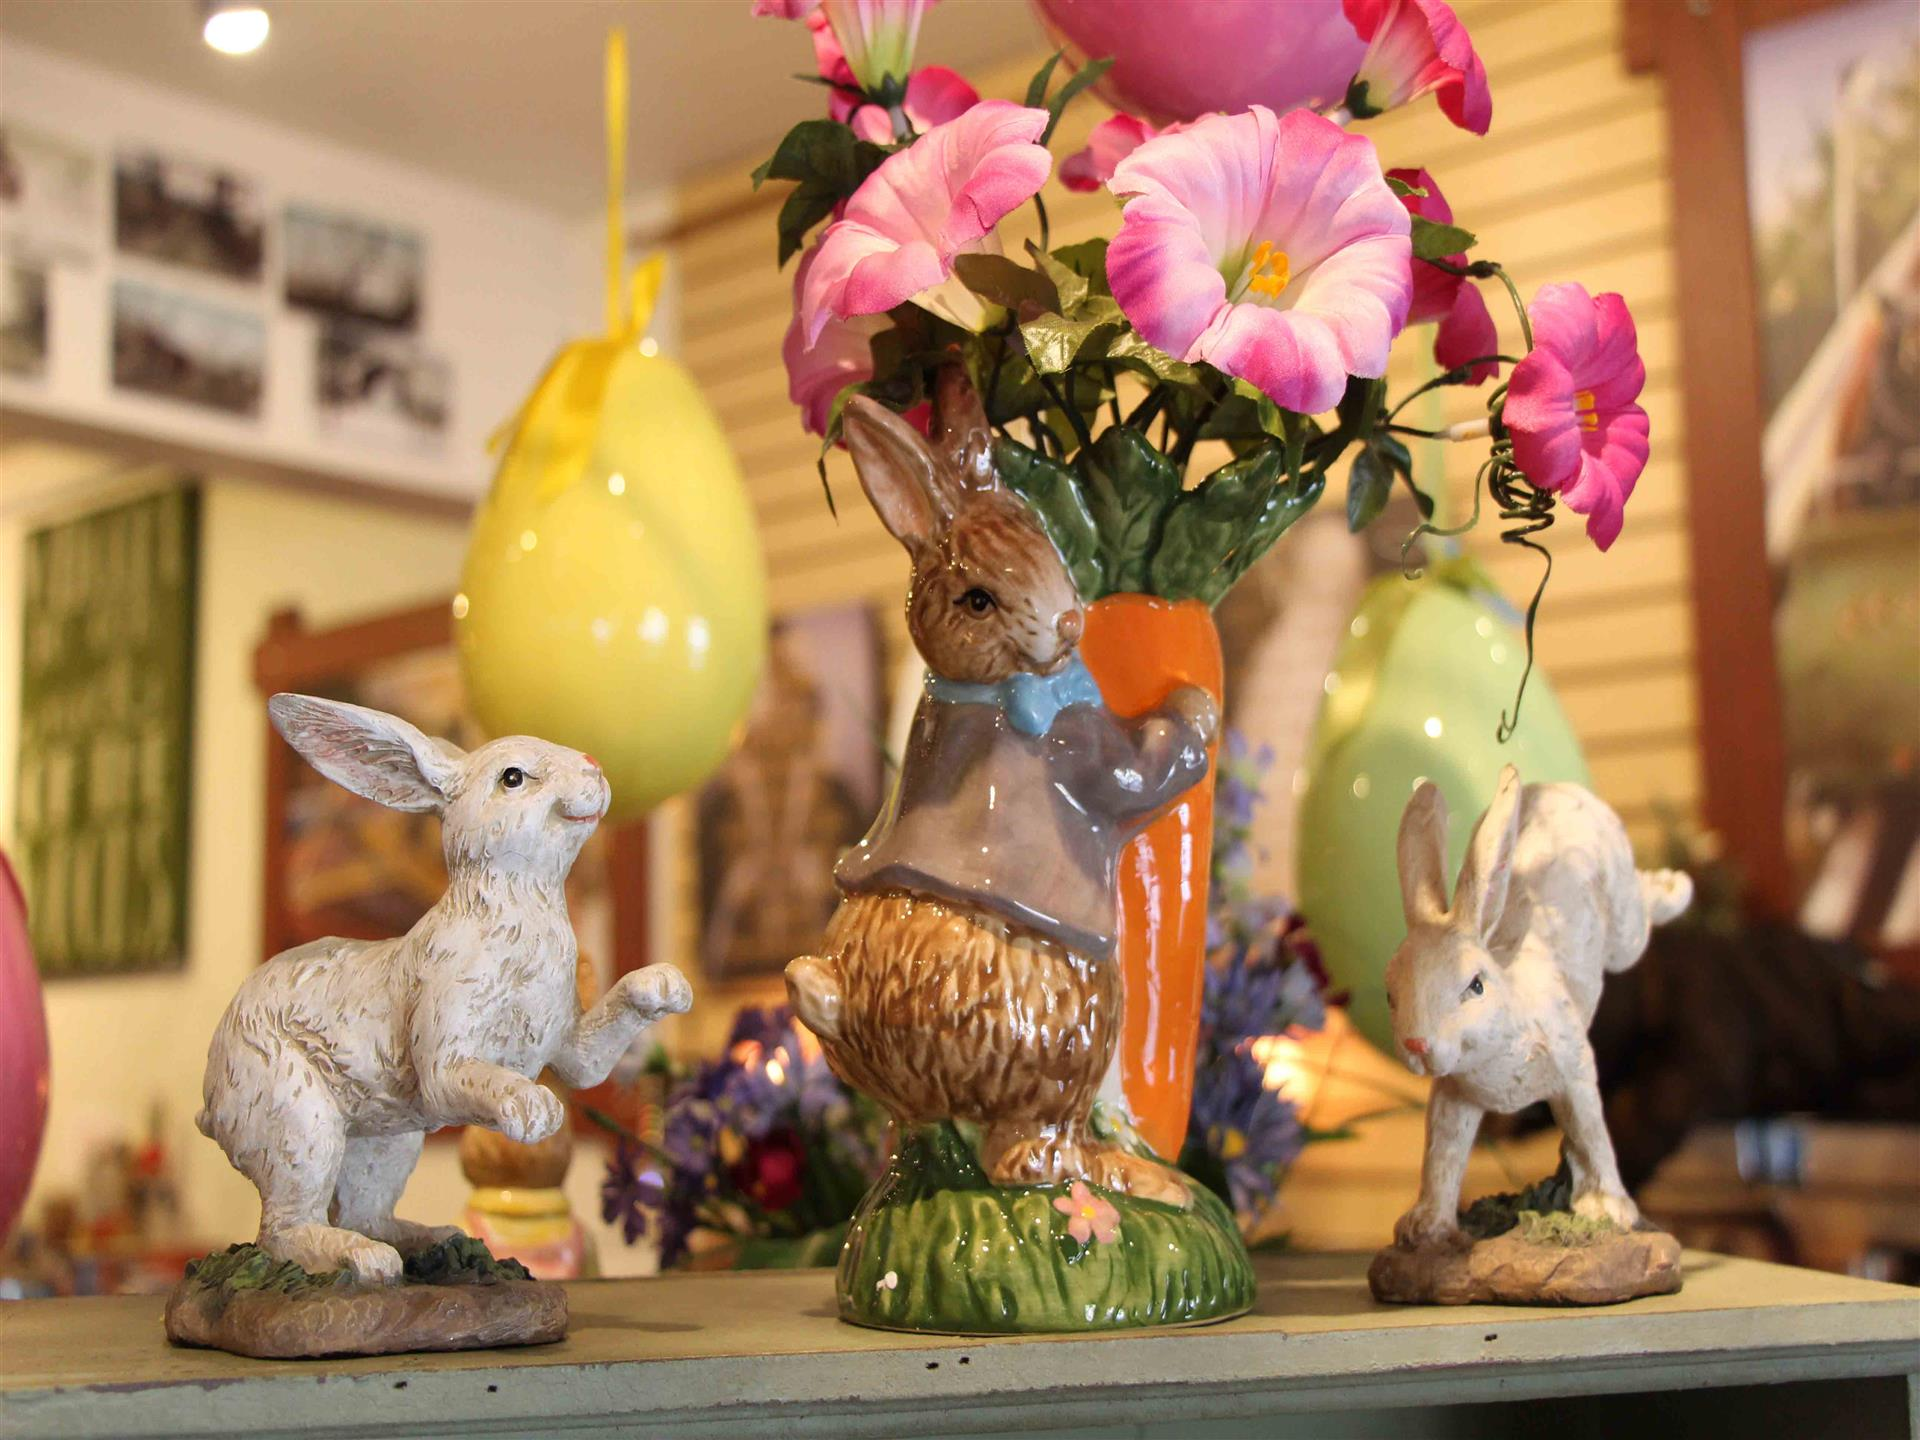 Ceramic bunny figurines with flowers on top of wood shelf